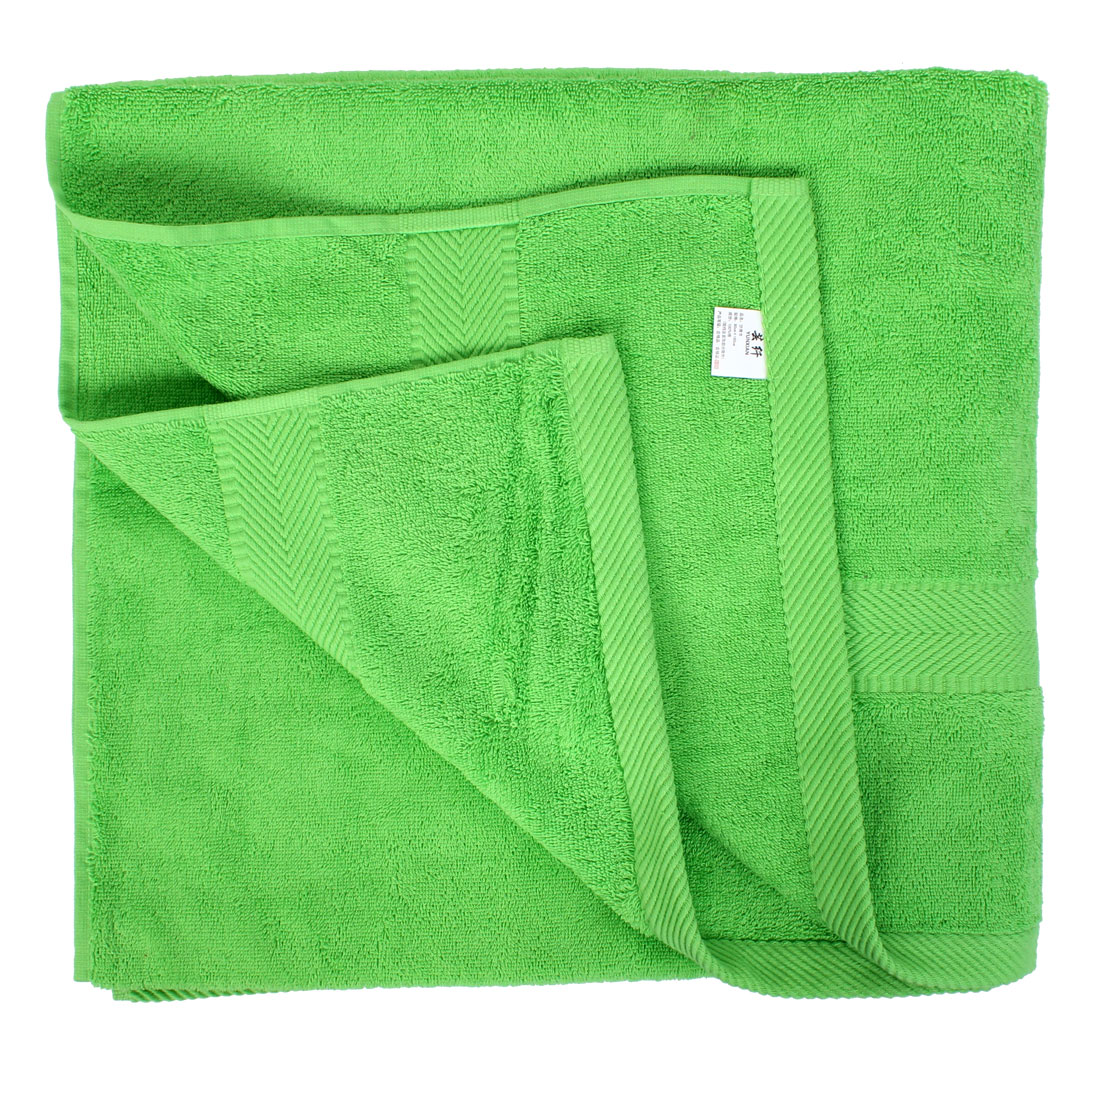 Hotel Gym Cotton Blend Beach Shower Bath Towel Sheet Washcloth Green 160 x 80cm